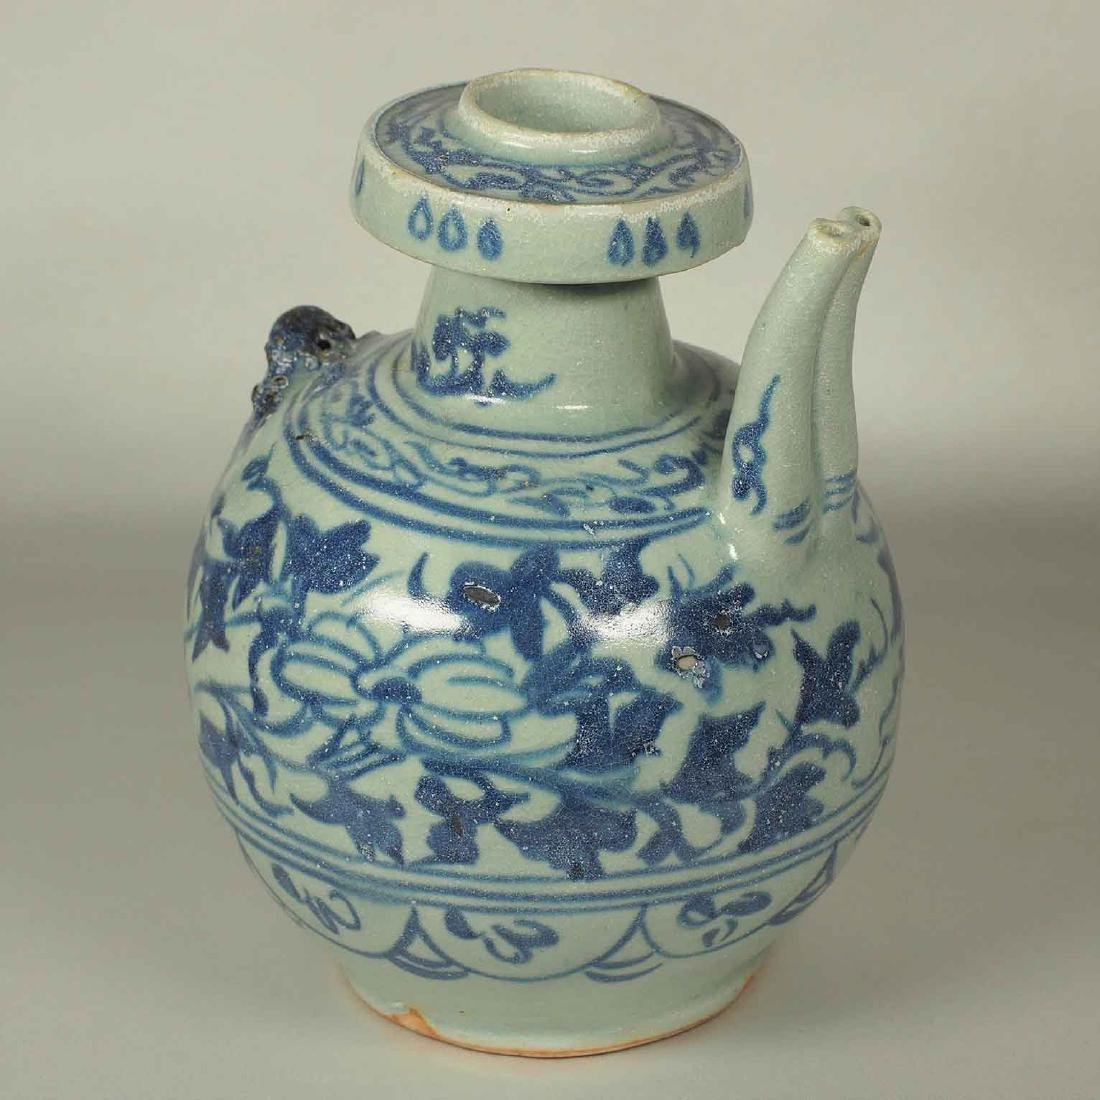 Kendi with Twin Spouts and Flower Design, Yuan-early